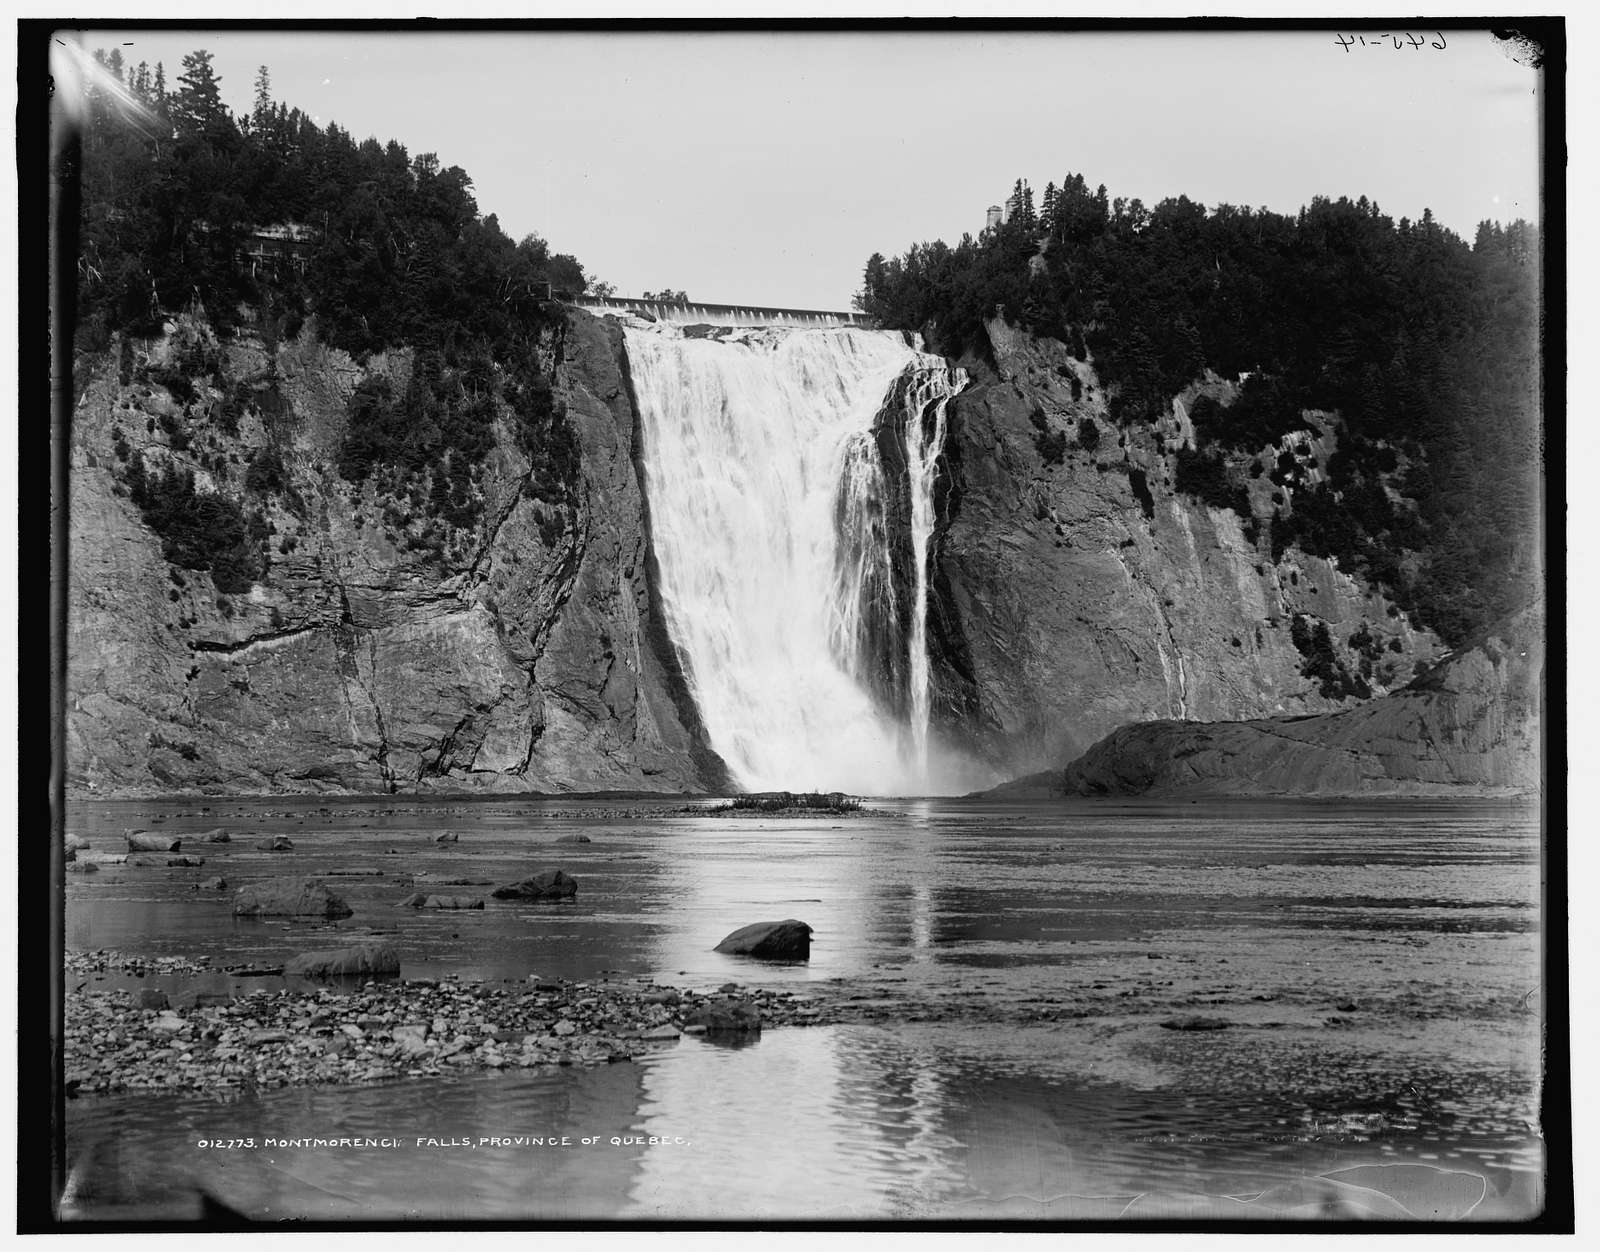 Montmorency Falls, Province of Quebec